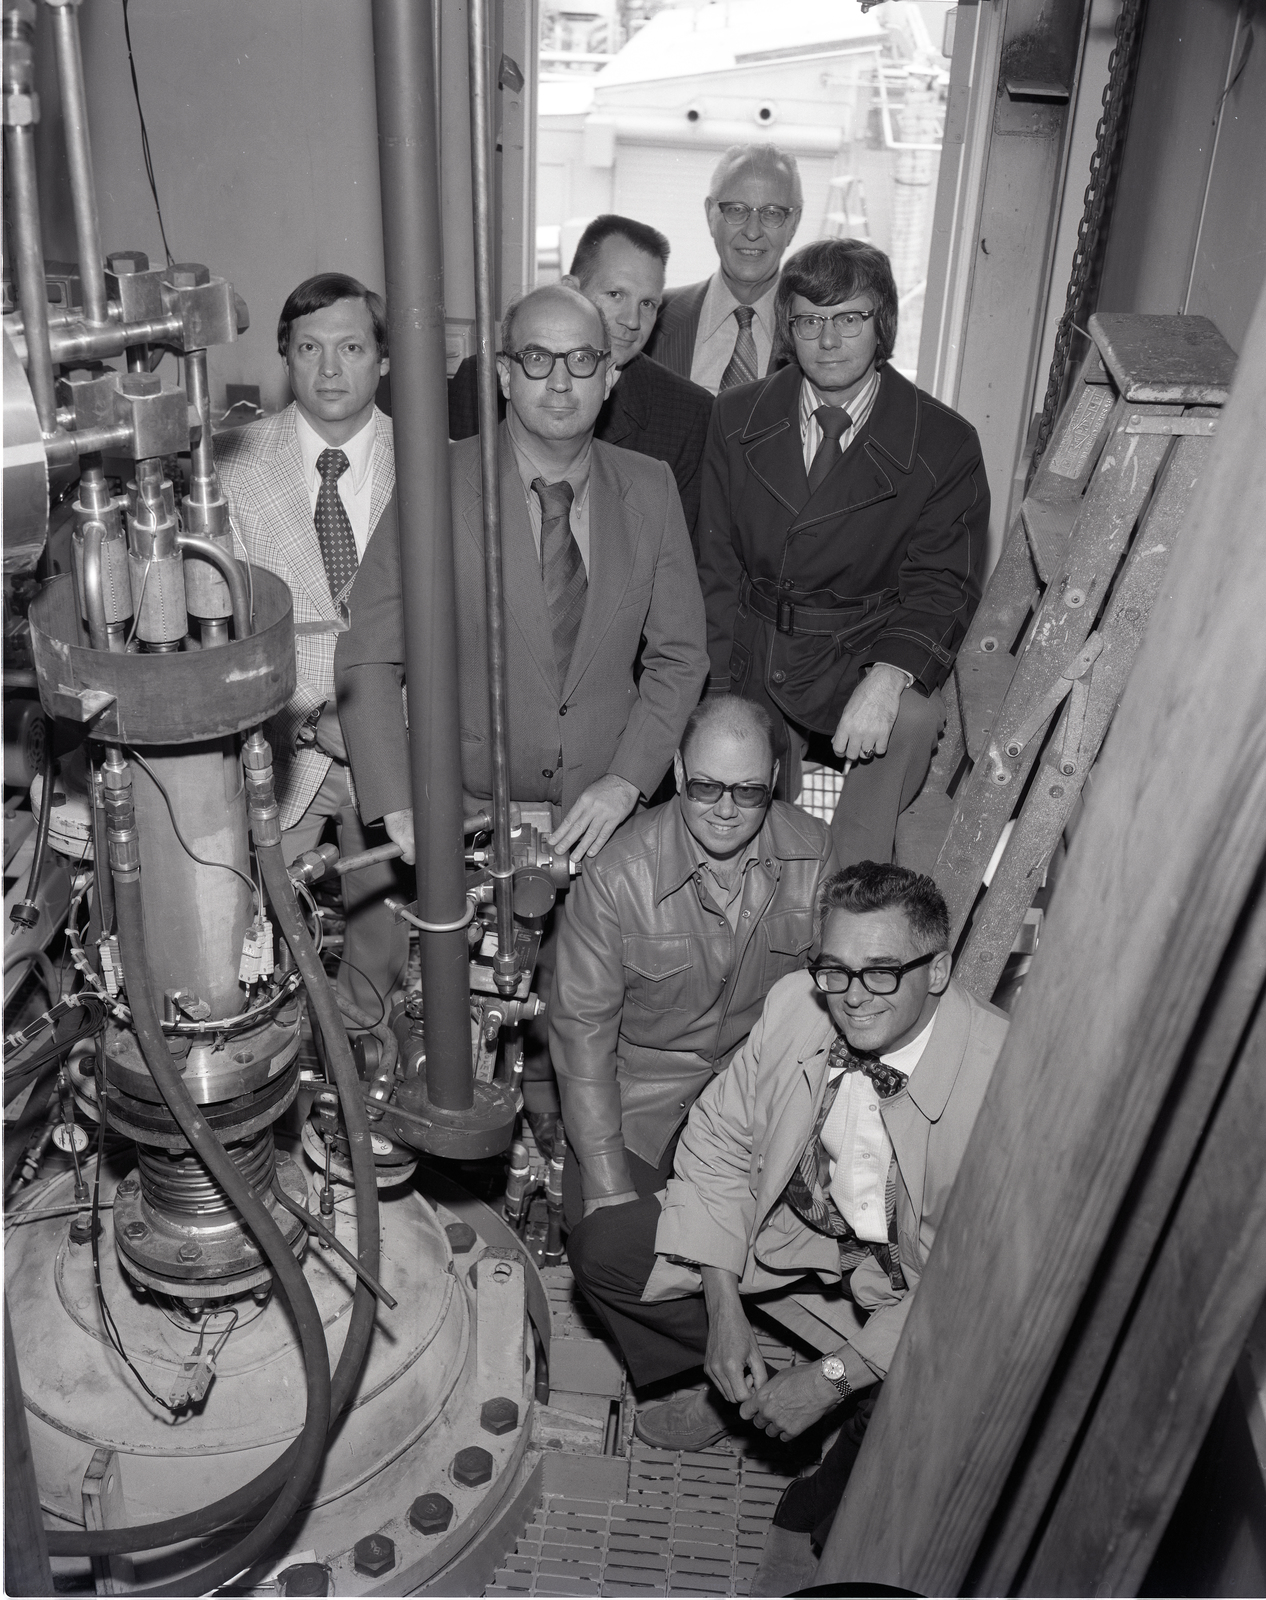 TOM OCILKA PERSONNEL WORKING ON THERMOCOUPLES - FRITZ KRAUSE PERSONNEL WORKING ON PIPING - BOB ROBINSON PERSONNEL WORKING ON INSTRUMENTATION - DESIGNERS POSING IN FRONT OF CELL 13 OLD ROCKET LABORATORY ORL WITH JIM KEATON - JOE RICHALSKY -